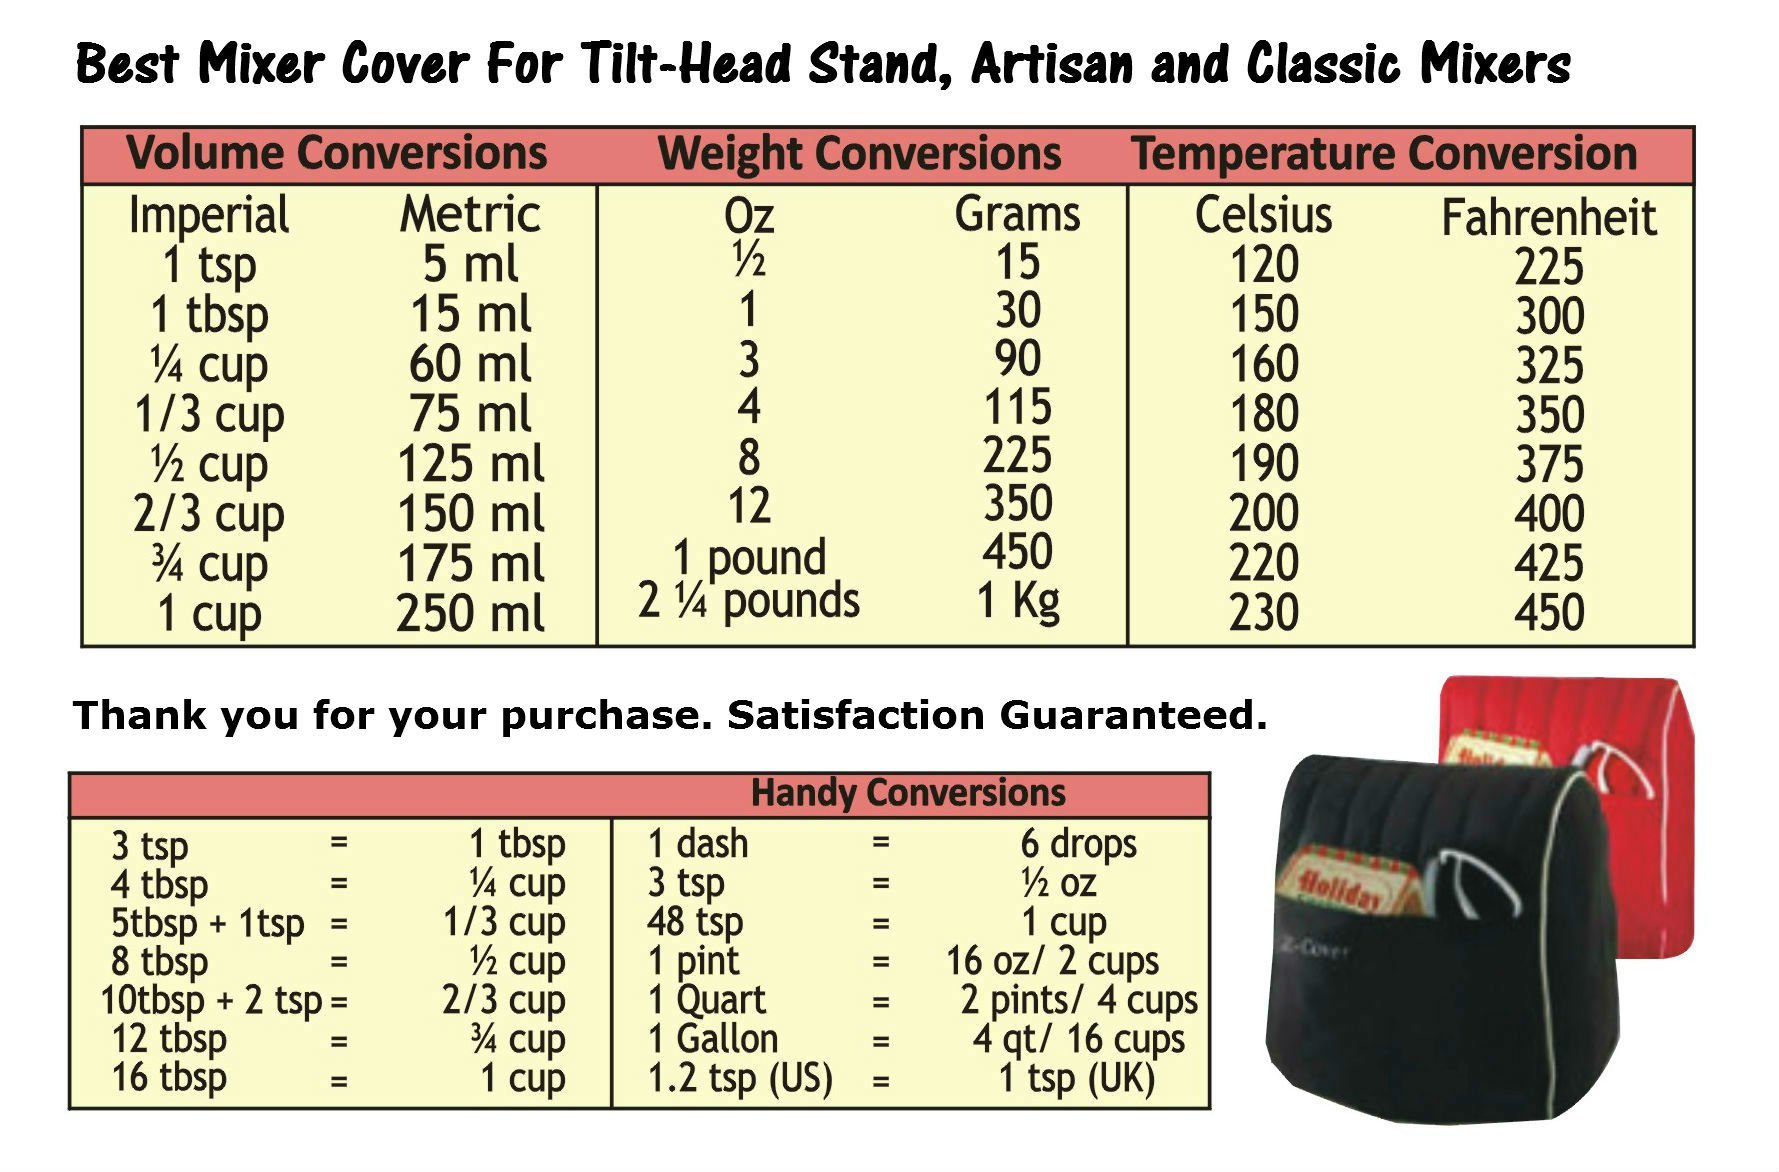 Cake Support Structure for Easy Gravity Defying Cakes by CakeFrame - BONUS Conversion Guide Included (Pouring Kit)